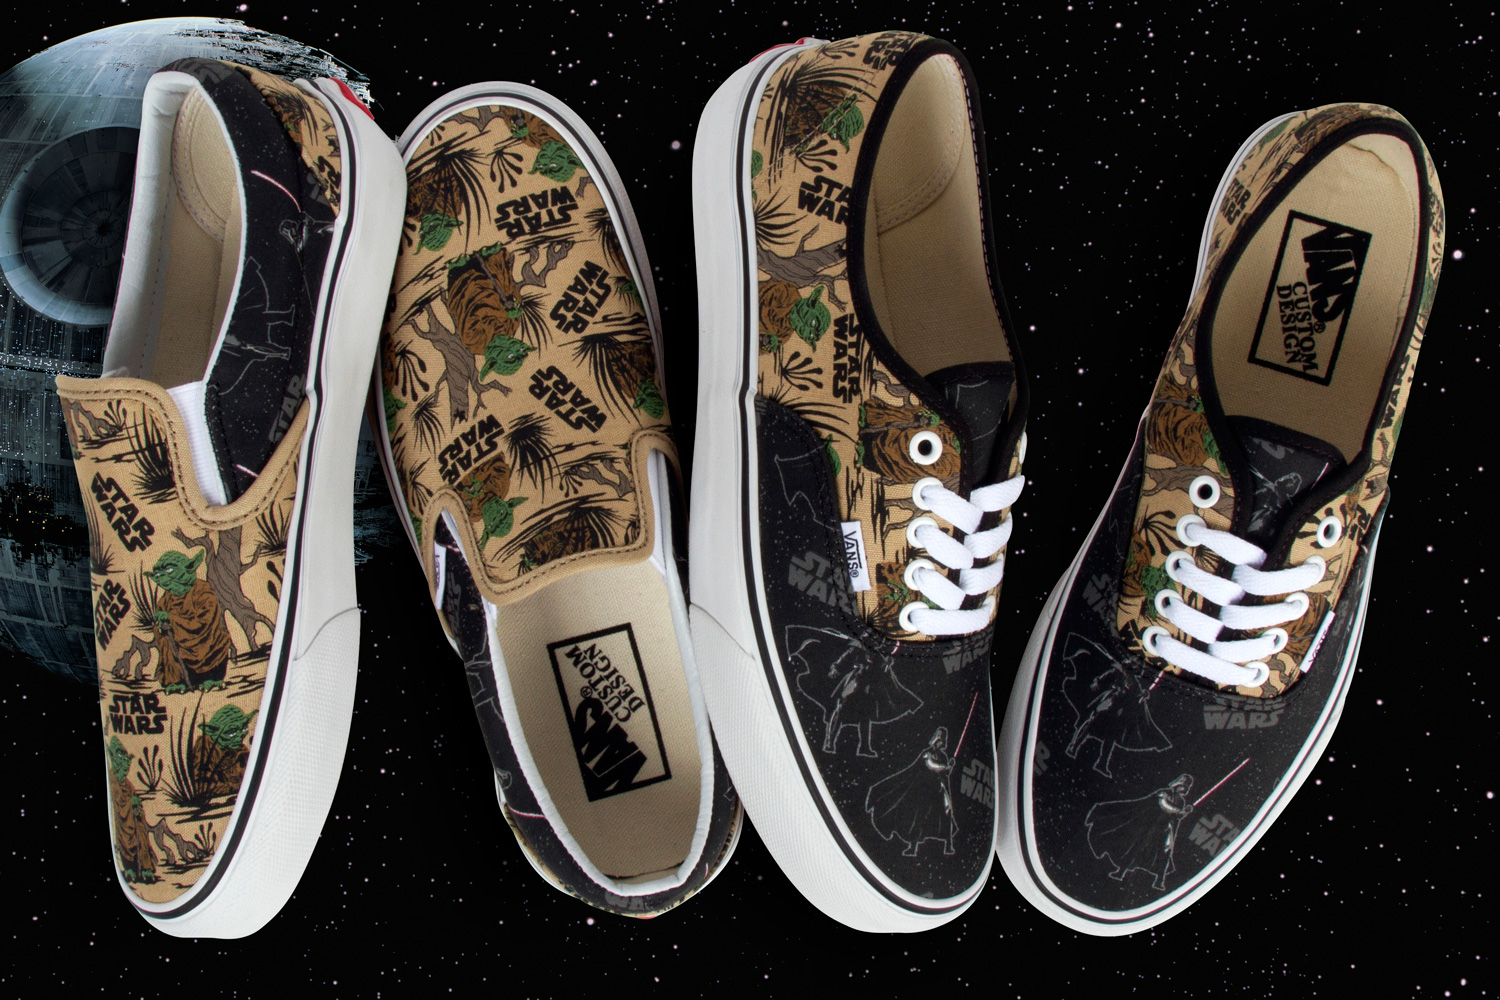 star wars vans shoes for sale